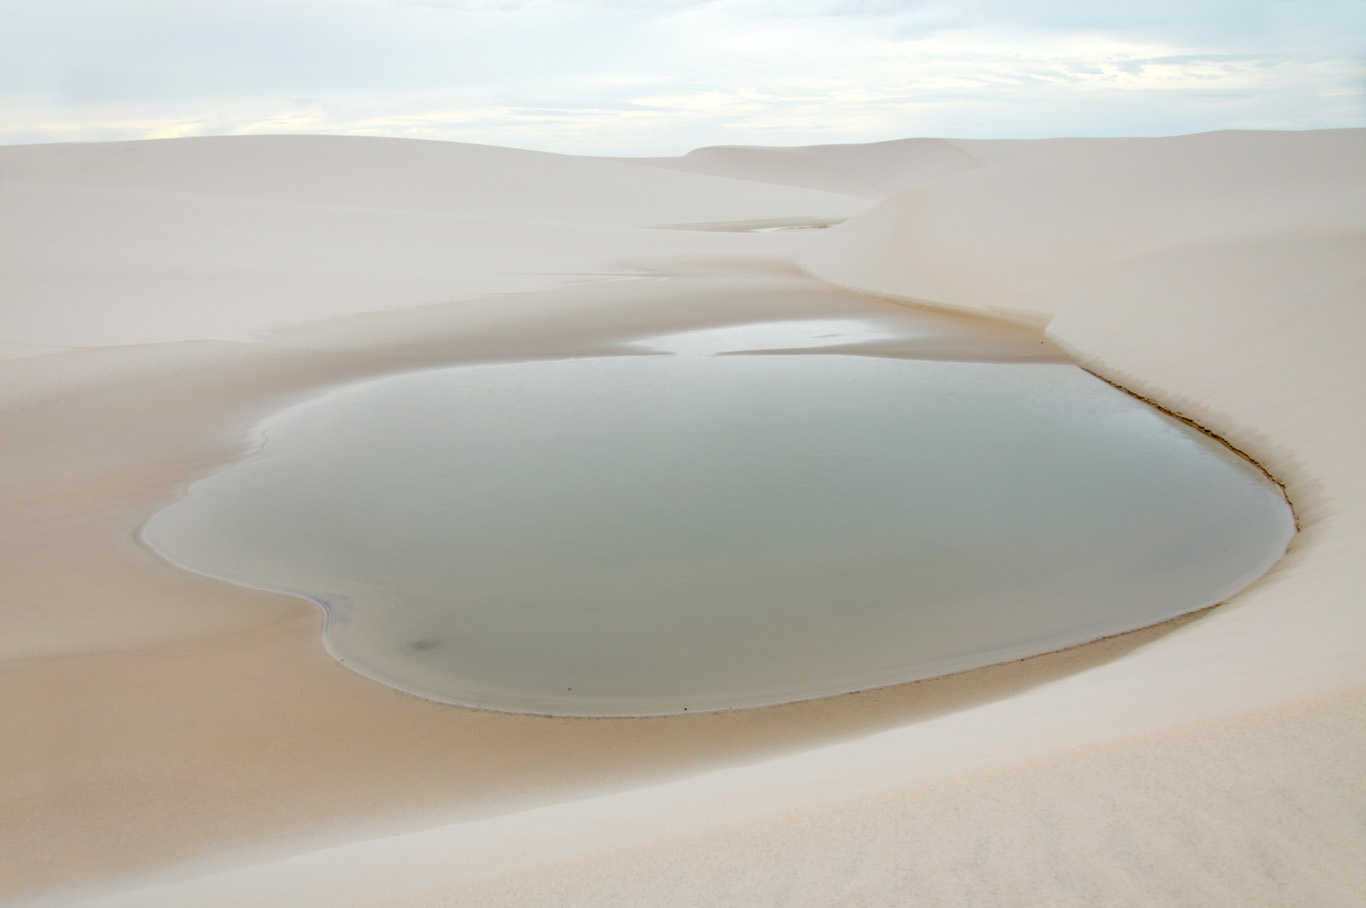 One of the lakes in the middle of the desert-like landscape